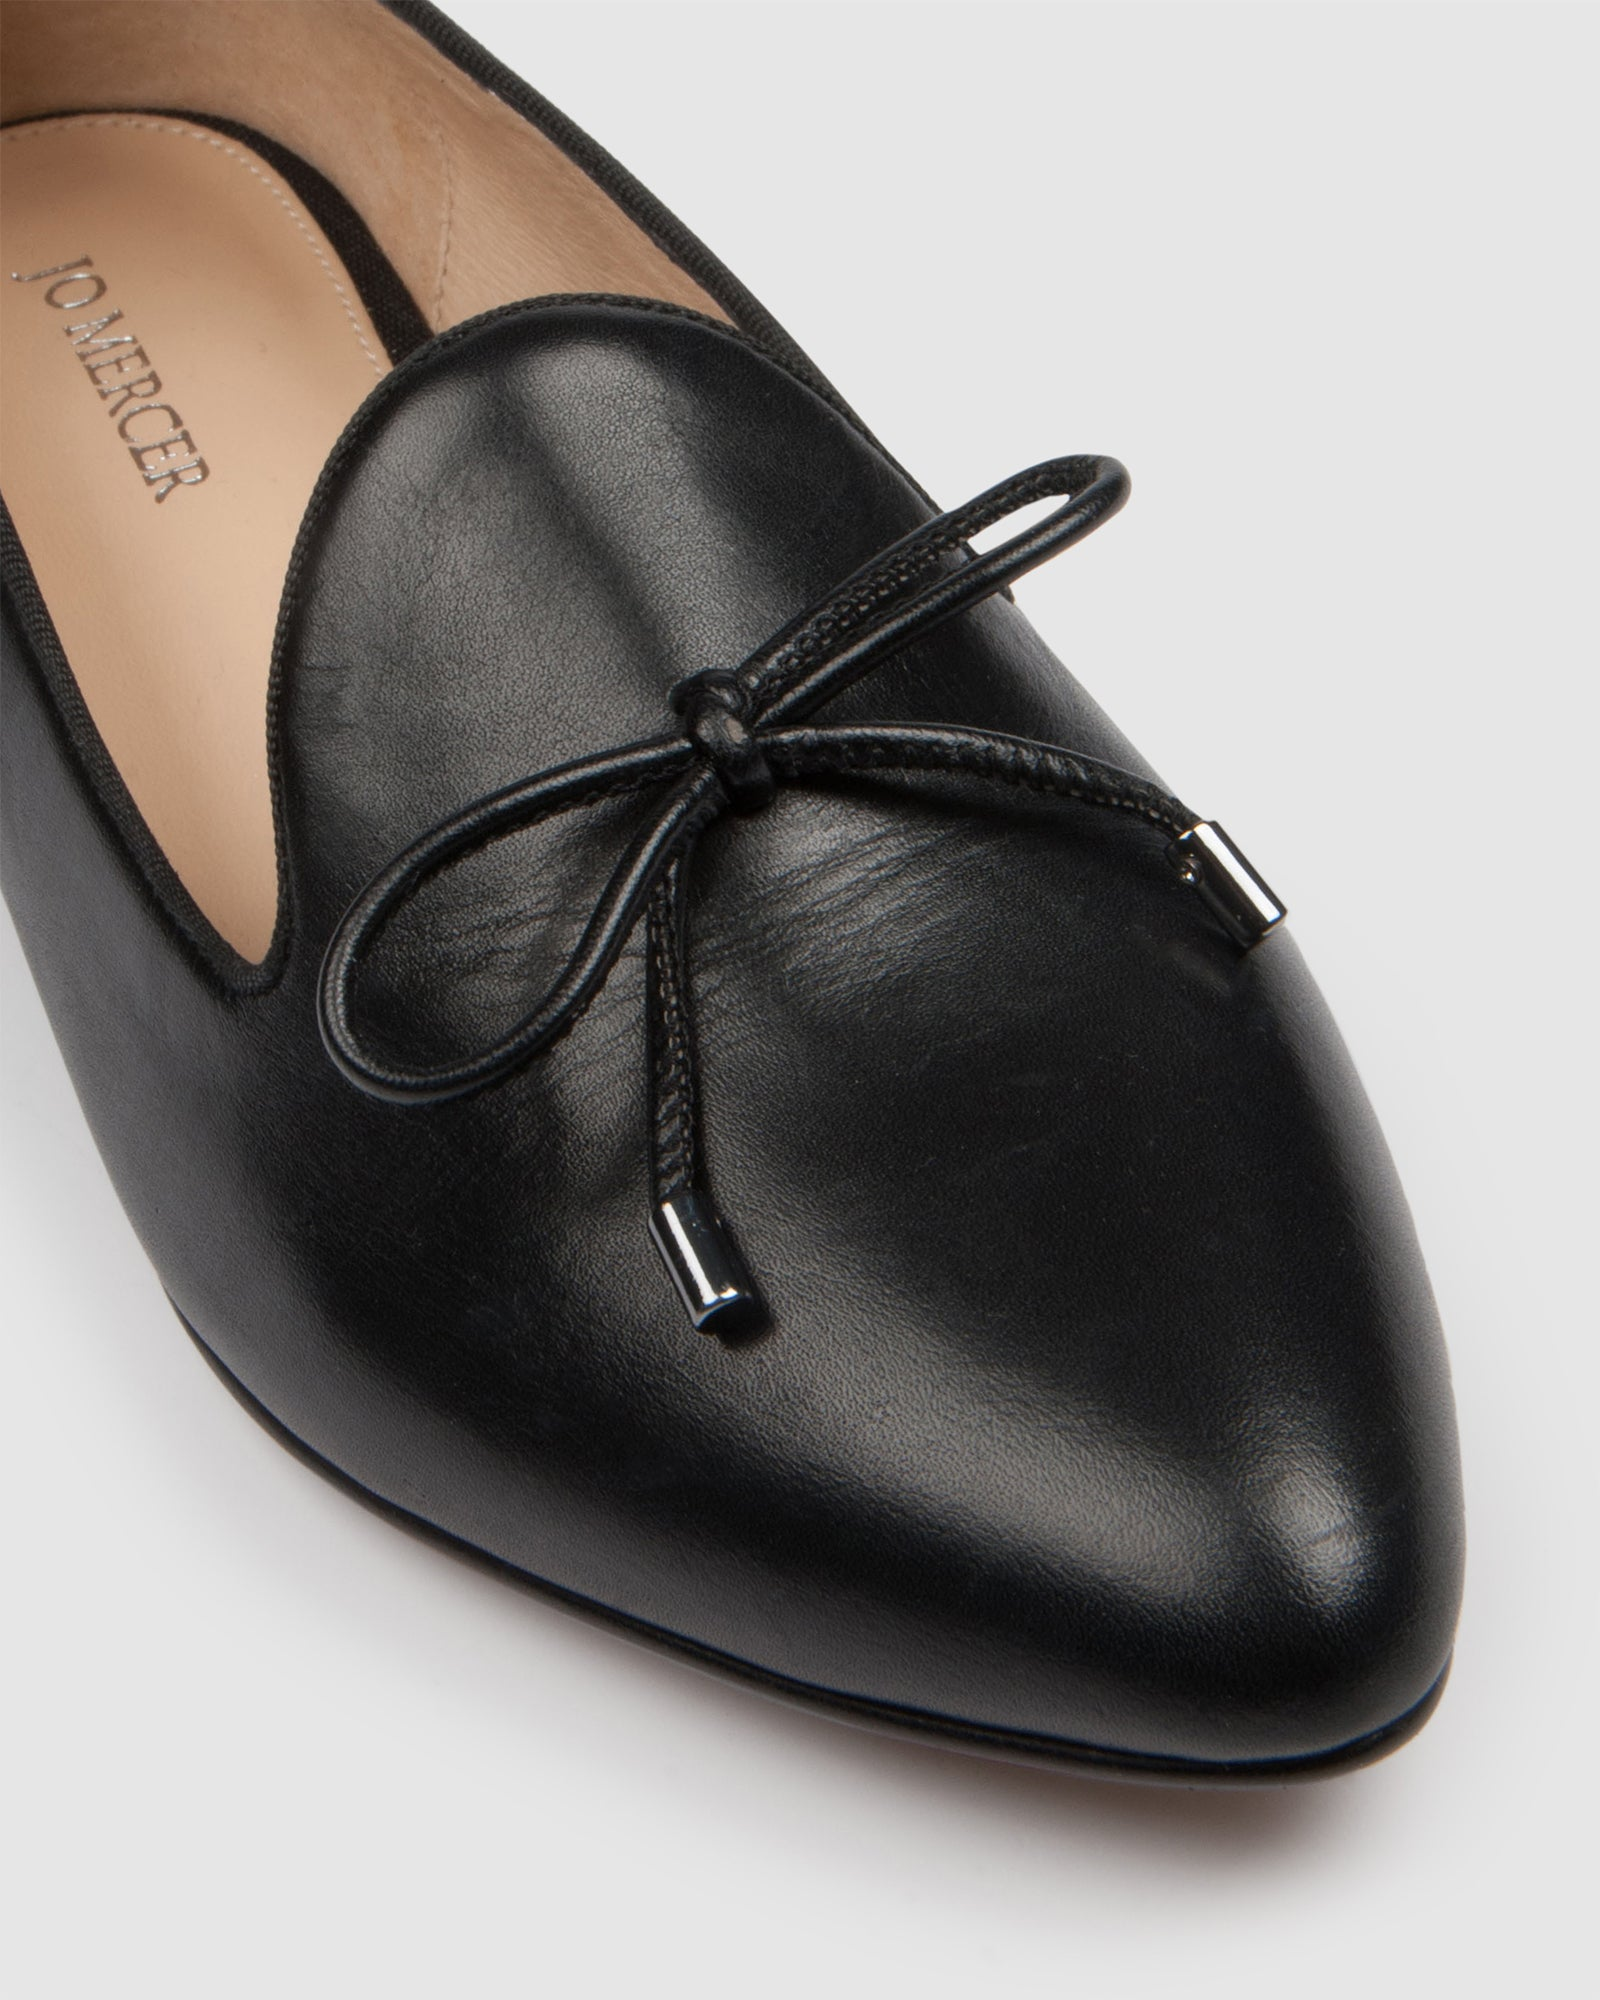 CLAUDIA LOAFERS BLACK LEATHER